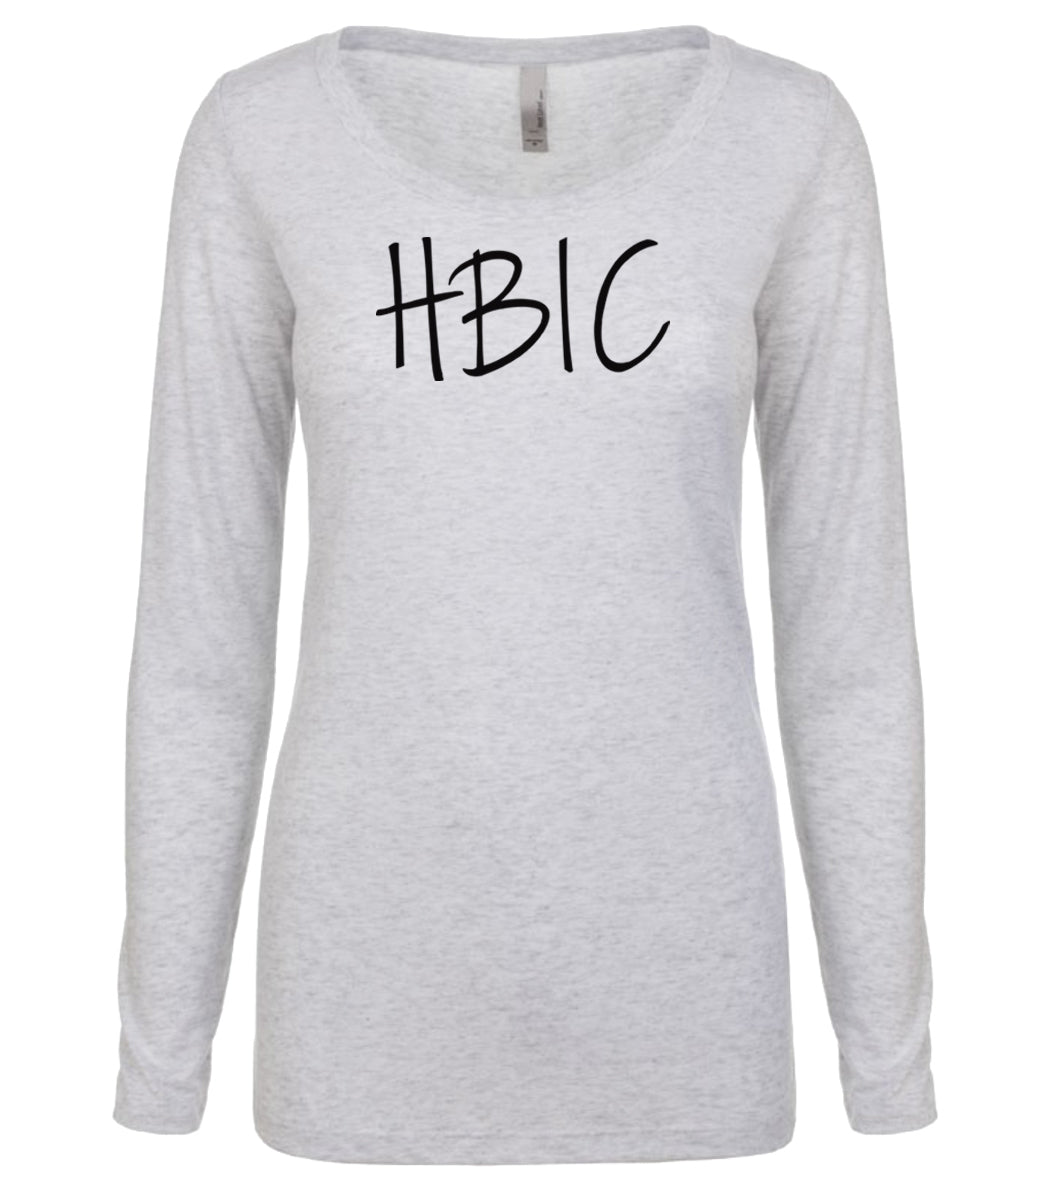 white HBIC long sleeve scoop shirt for women